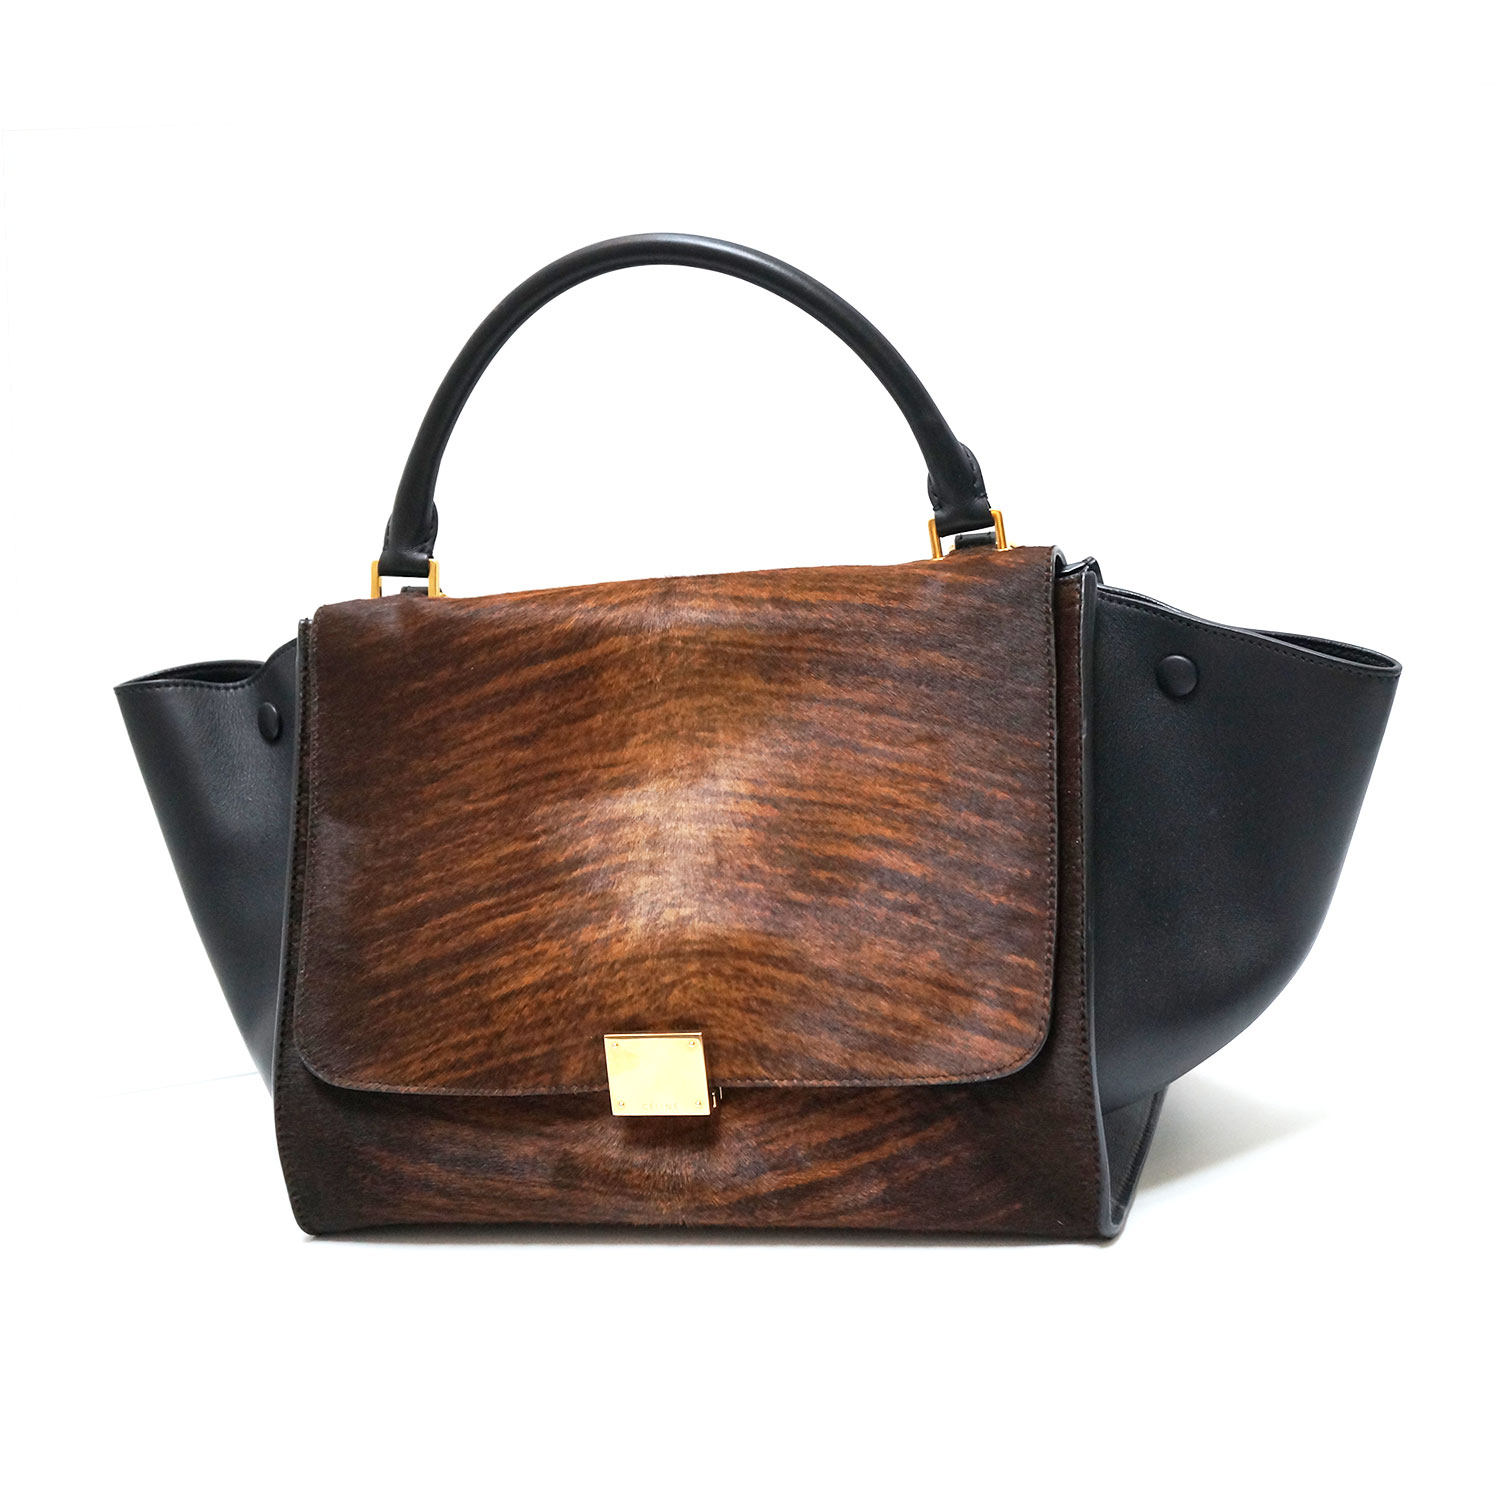 39c9cd985894 Celine Shaded Pony Hair Black Calfskin Leather Medium Trapeze Bag ...